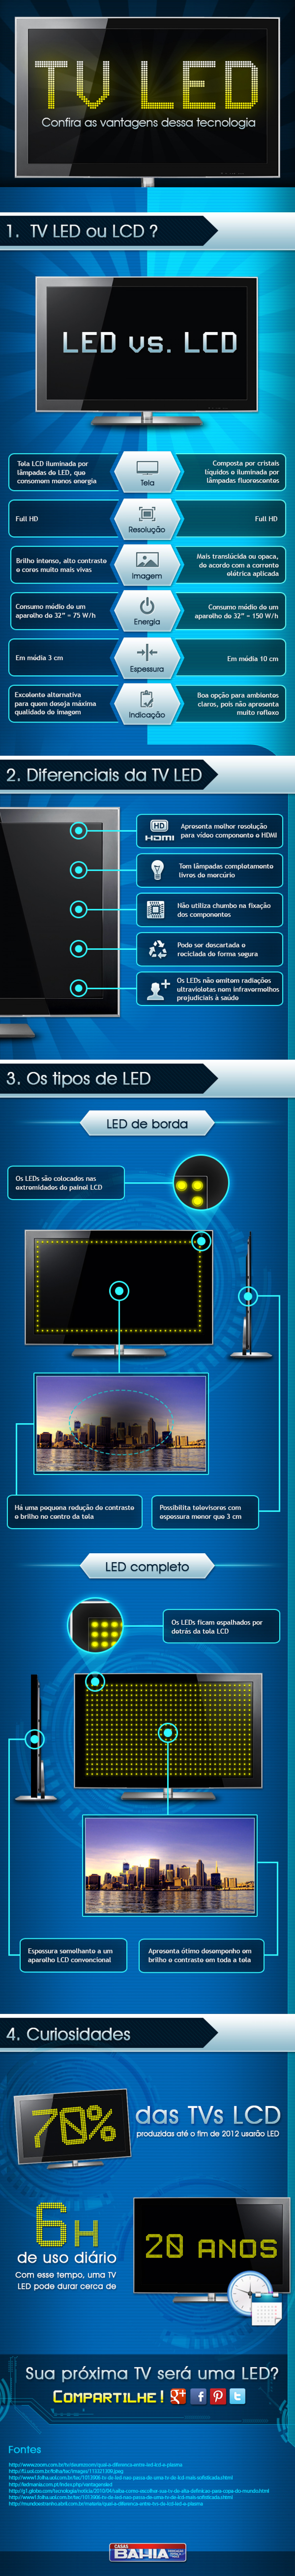 LED TV vs LCD TV Infographic